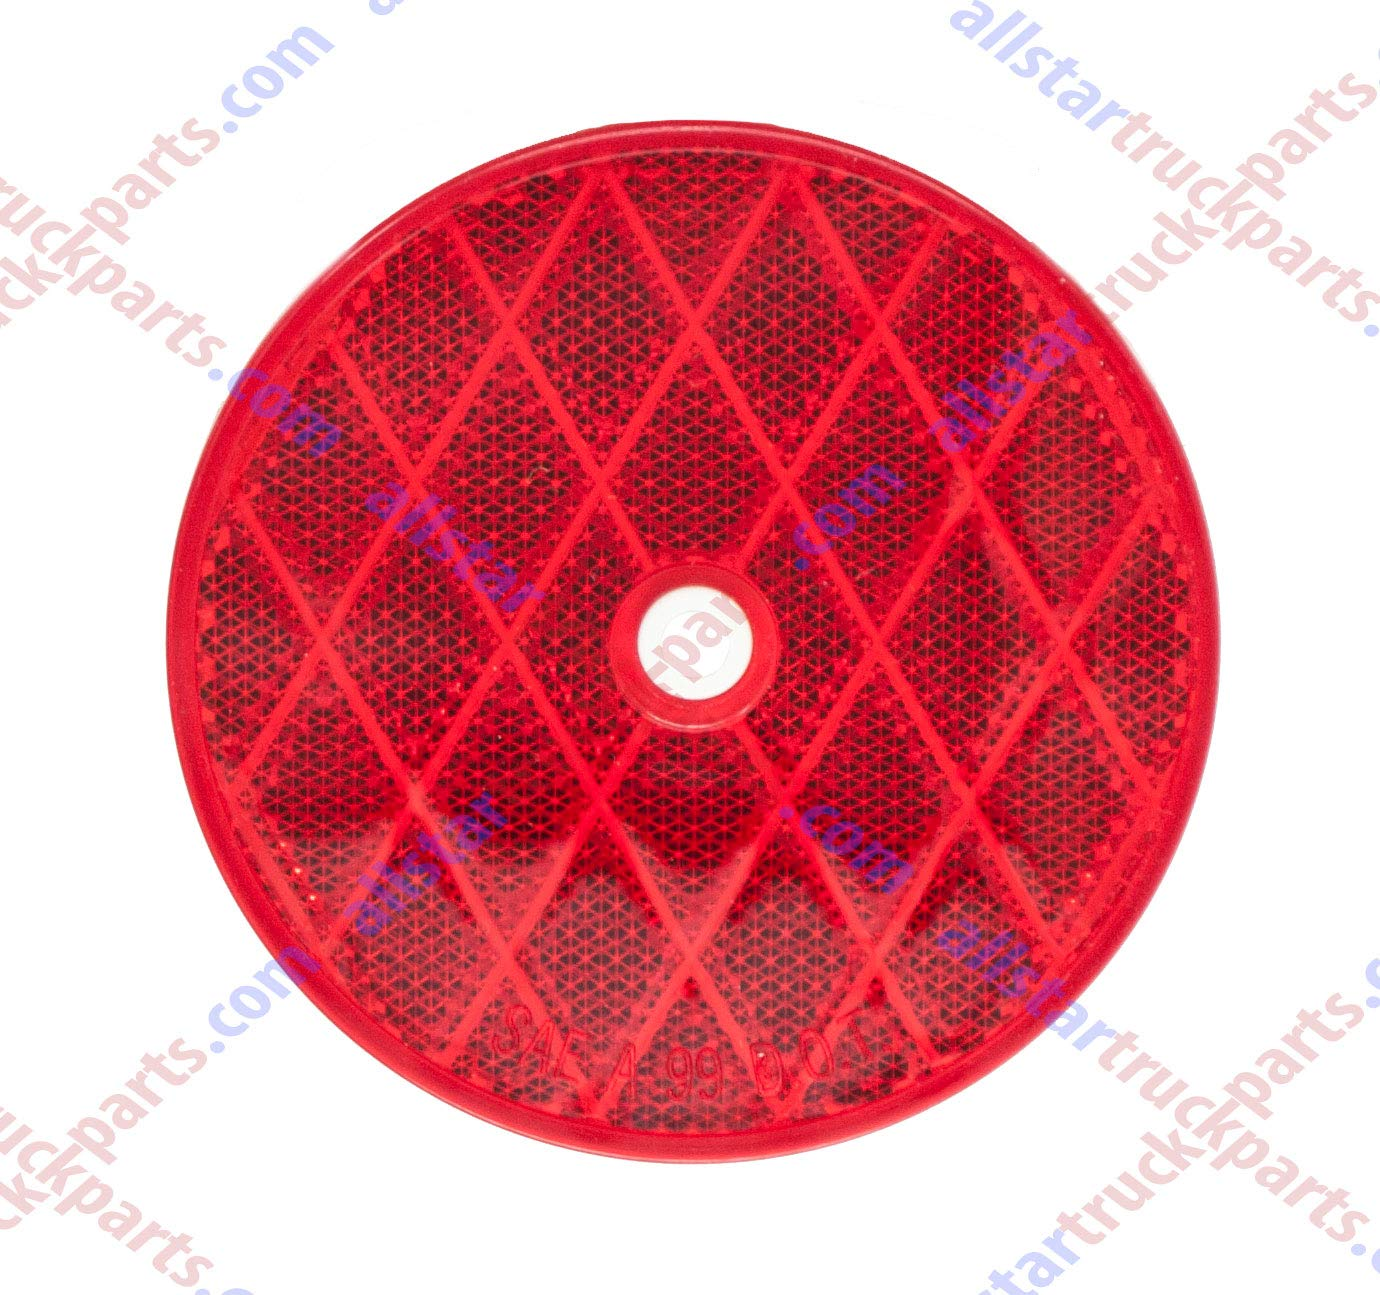 ALL STAR TRUCK PARTS 2 Pack for Trailers Boats RVs Mail Boxes Class A 3-3//16 Round Reflector with Center Mounting Hole Trucks Industrial Applications Red, 2 Automobiles SUVs